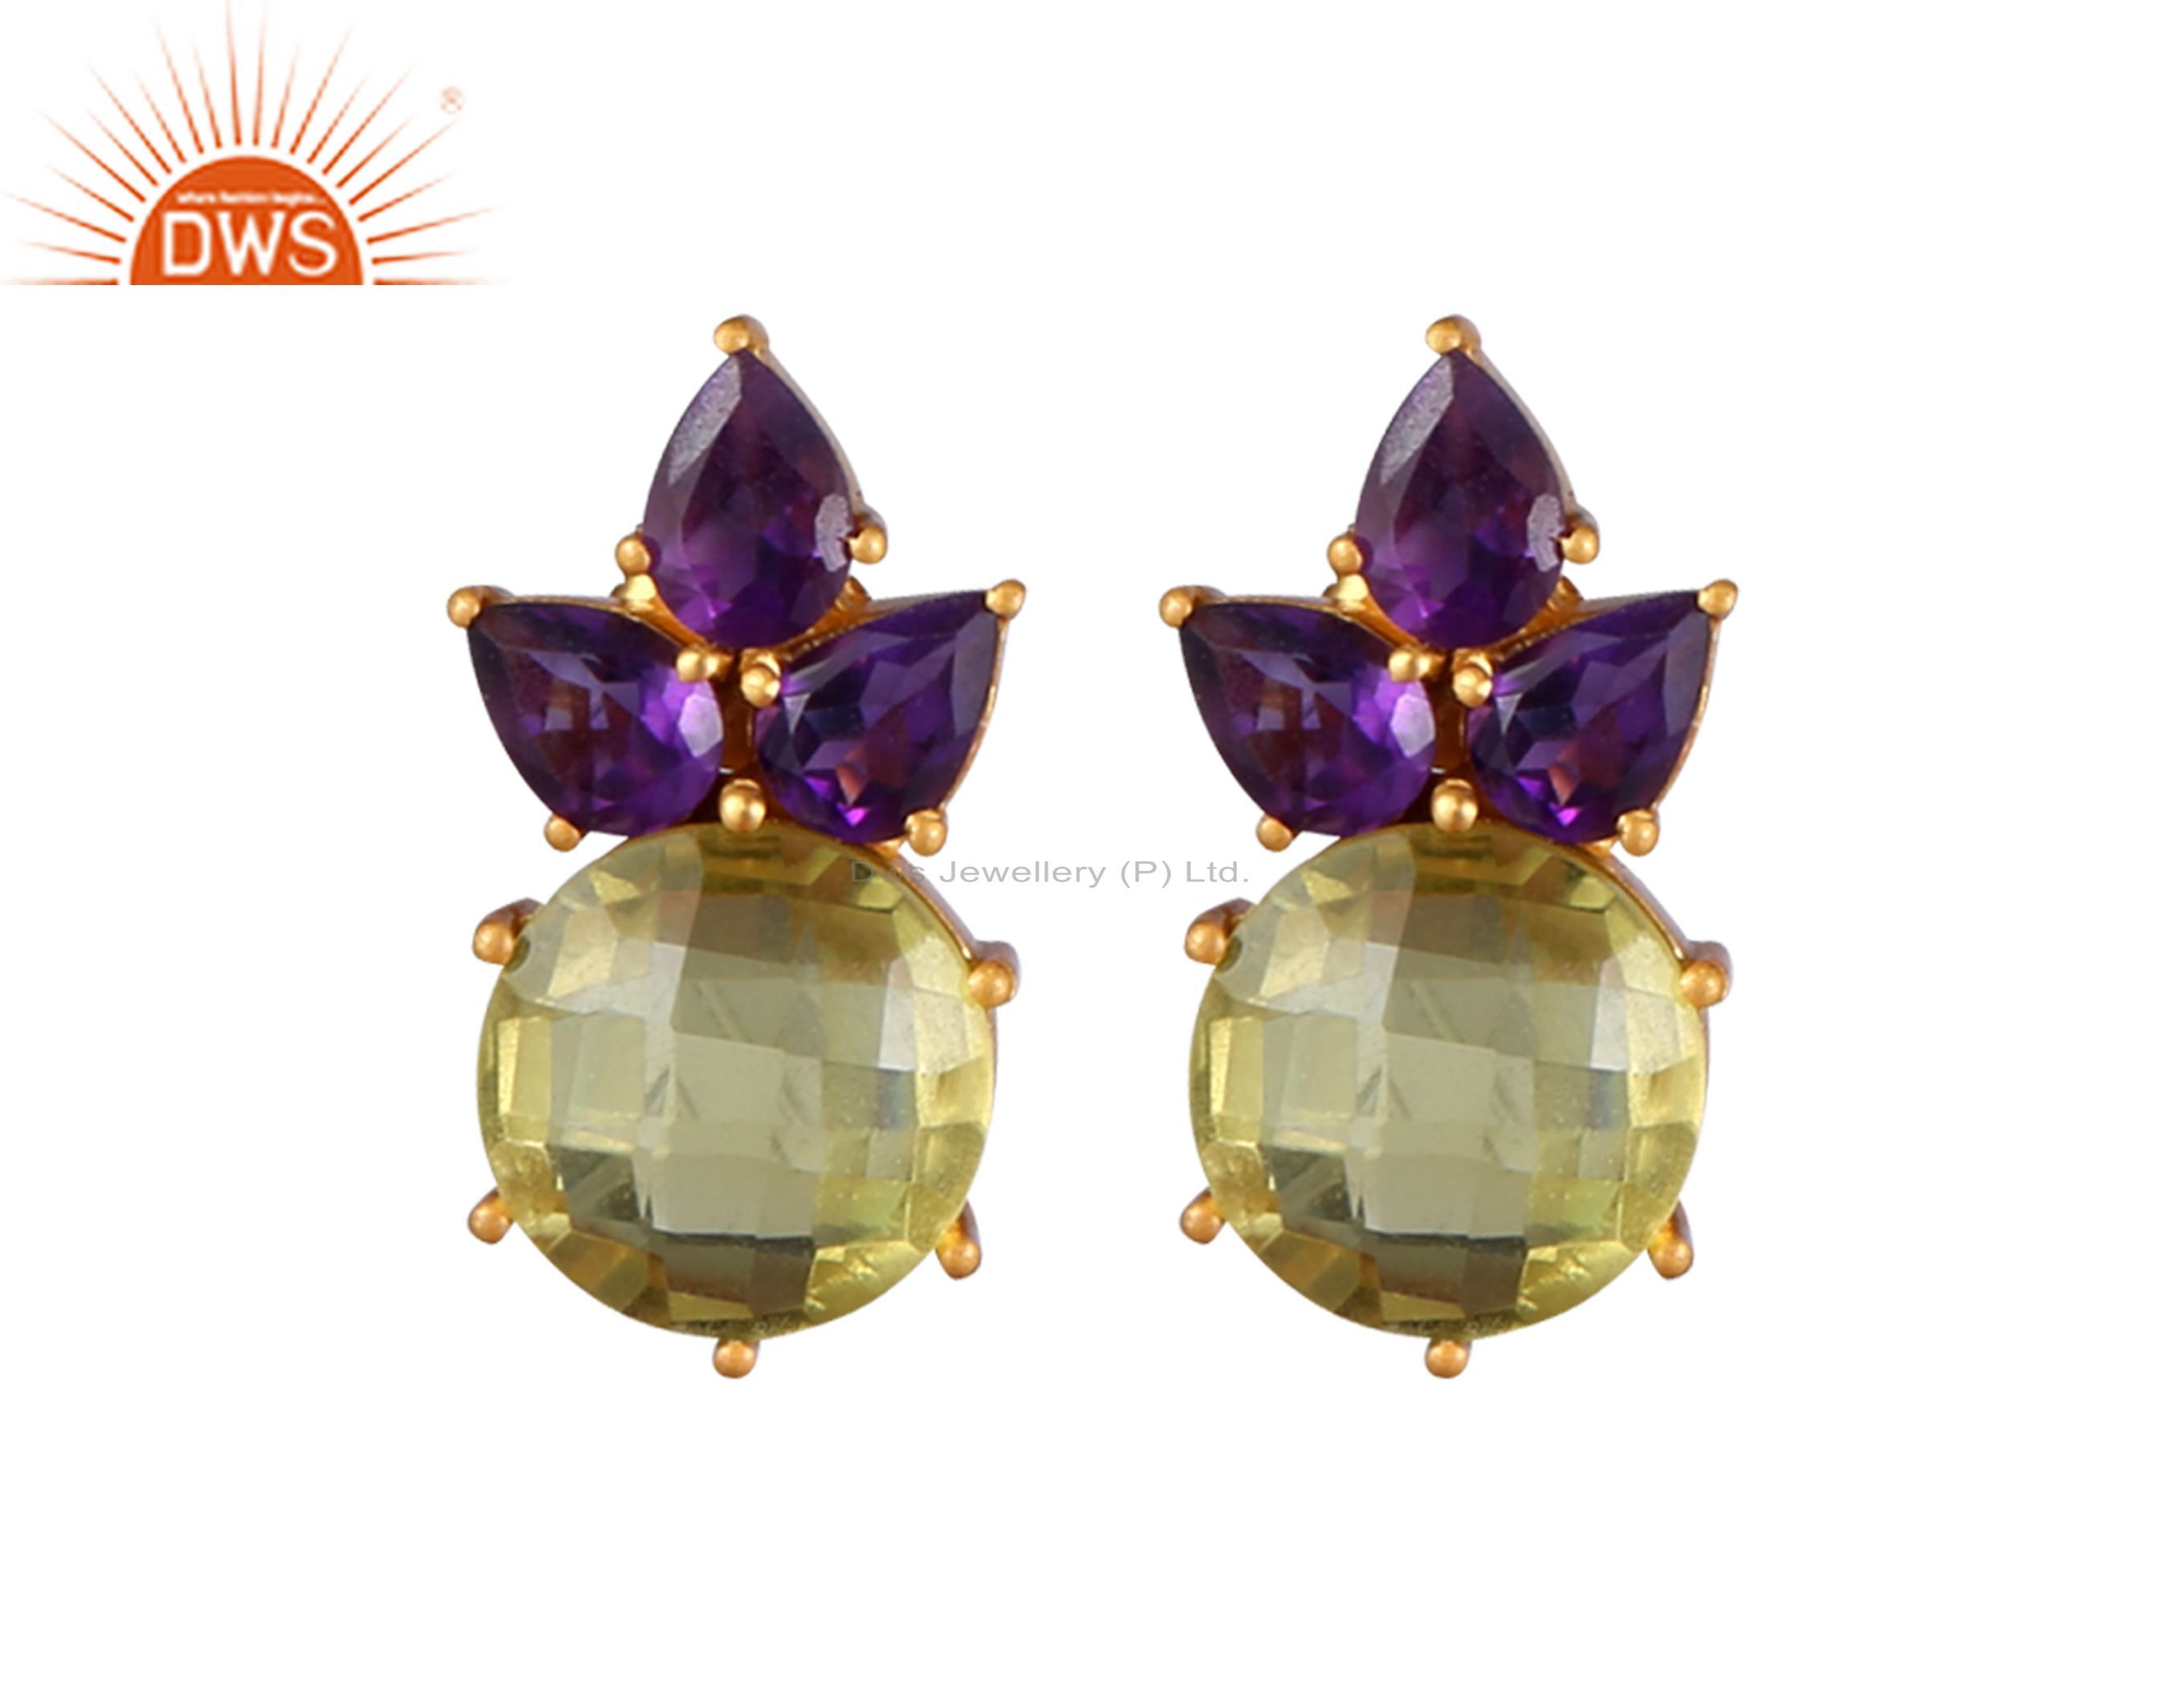 18K Yellow Gold Plated Sterling Silver Amethyst And Lemon Topaz Stud Earrings